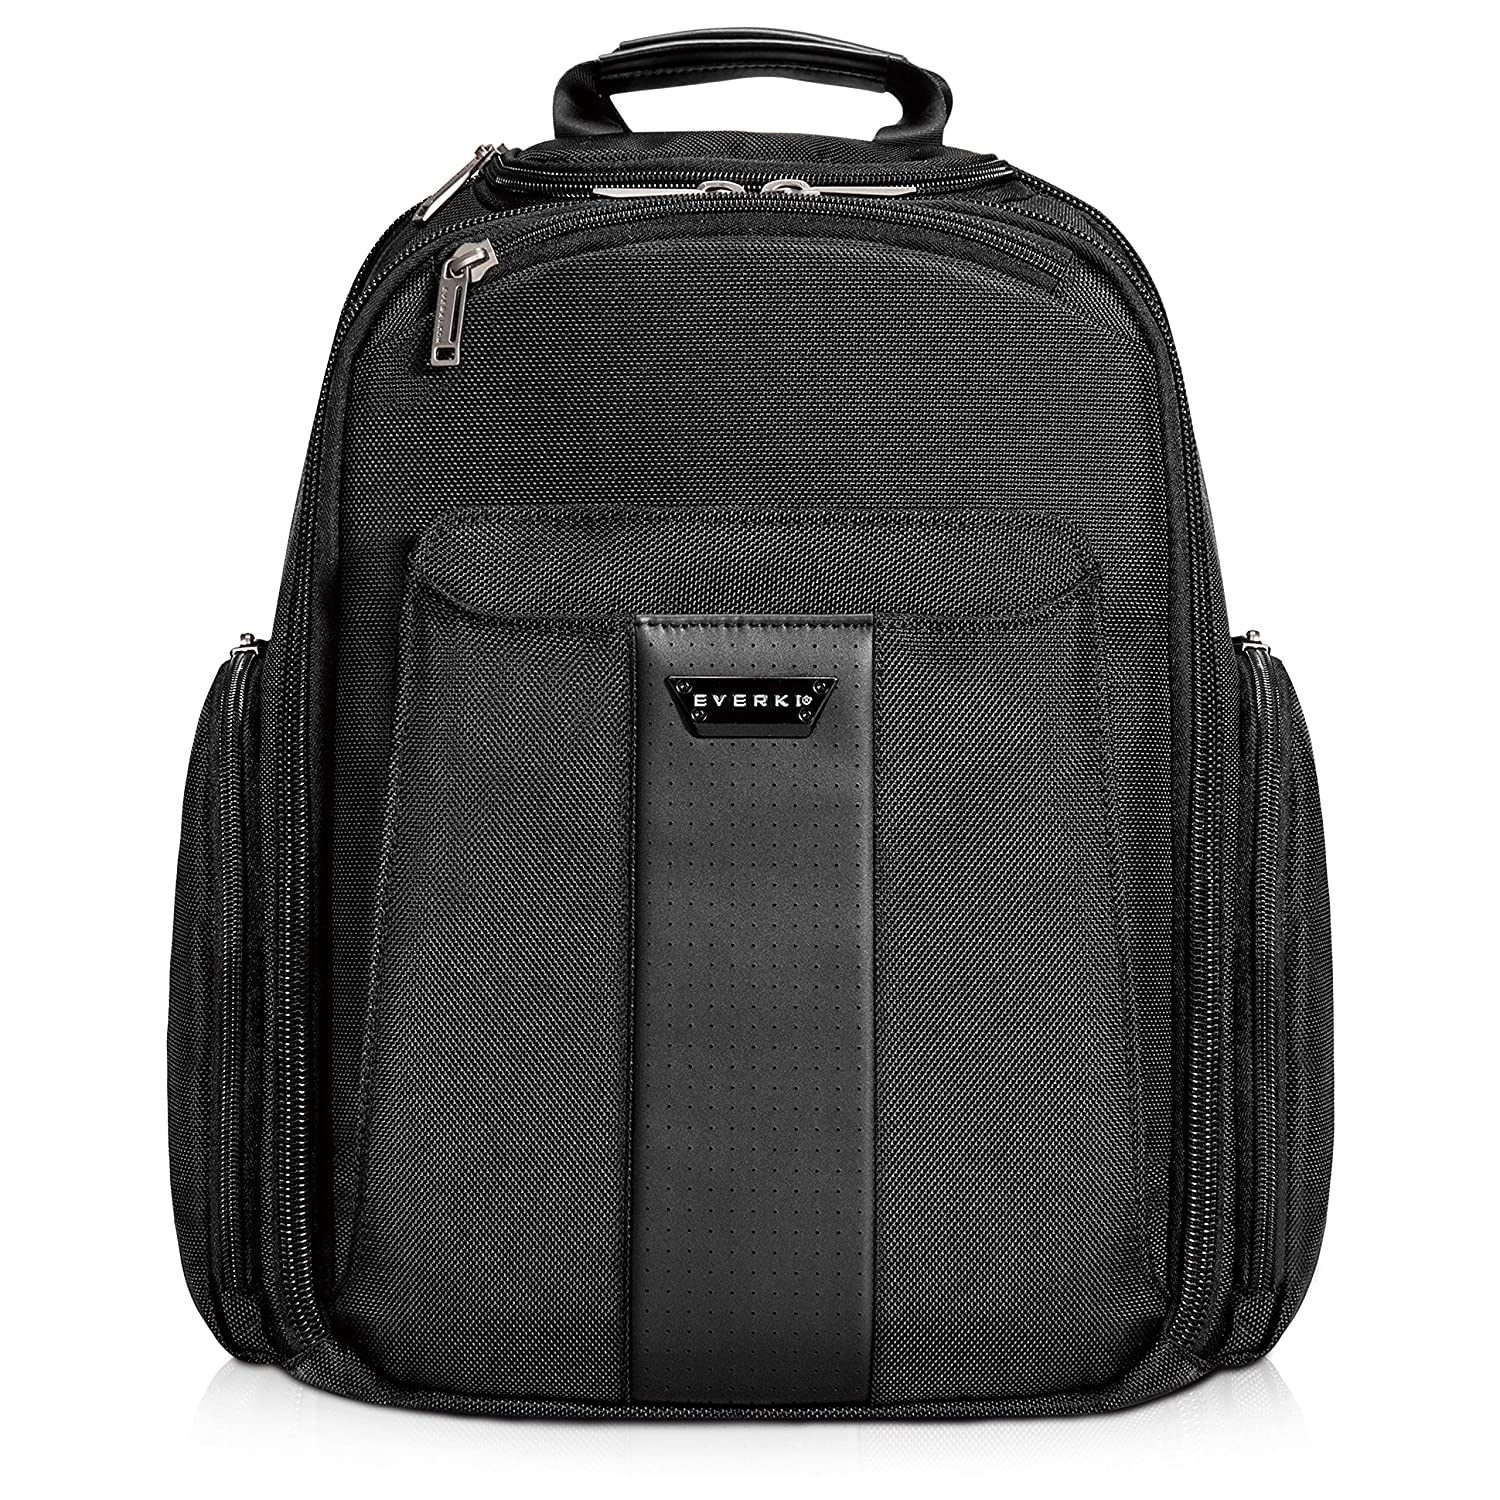 Everki Versa Premium Checkpoint Friendly Laptop Backpack for 14.1-Inch MacBook Pro 15 EKP127